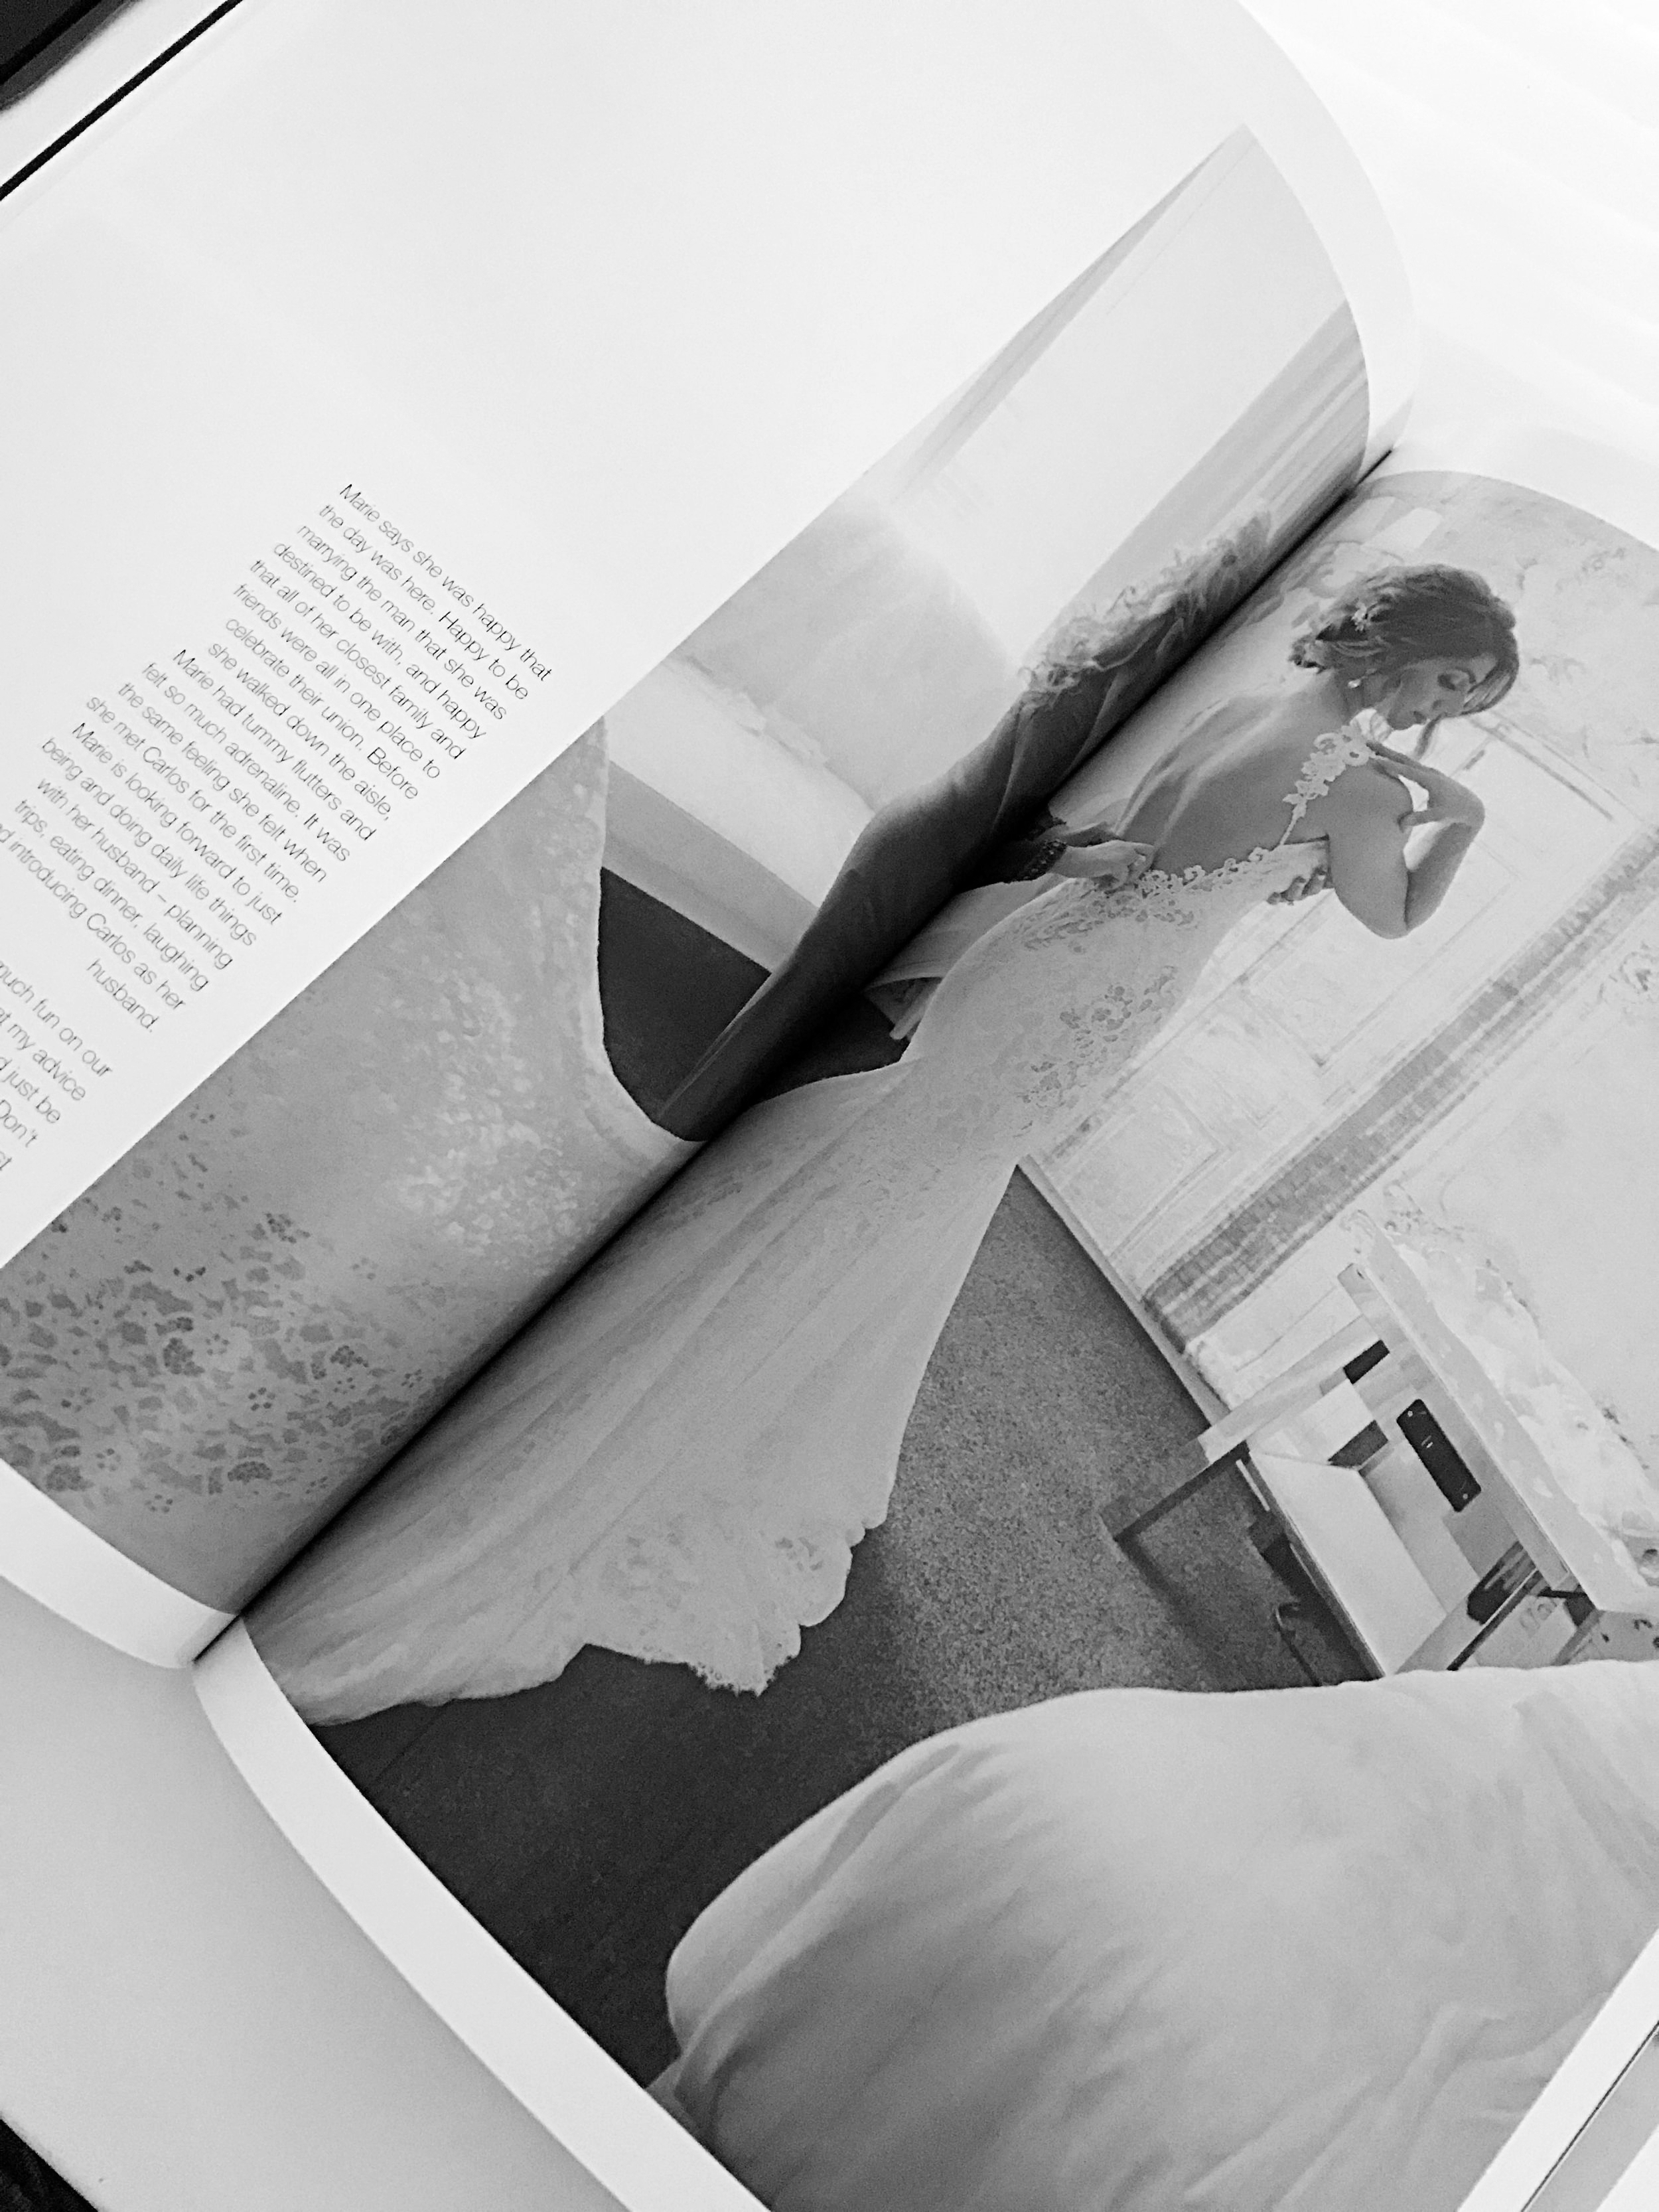 Get your own personalized, chic wedding magazine in print and online: www.weddingeditorialist.com